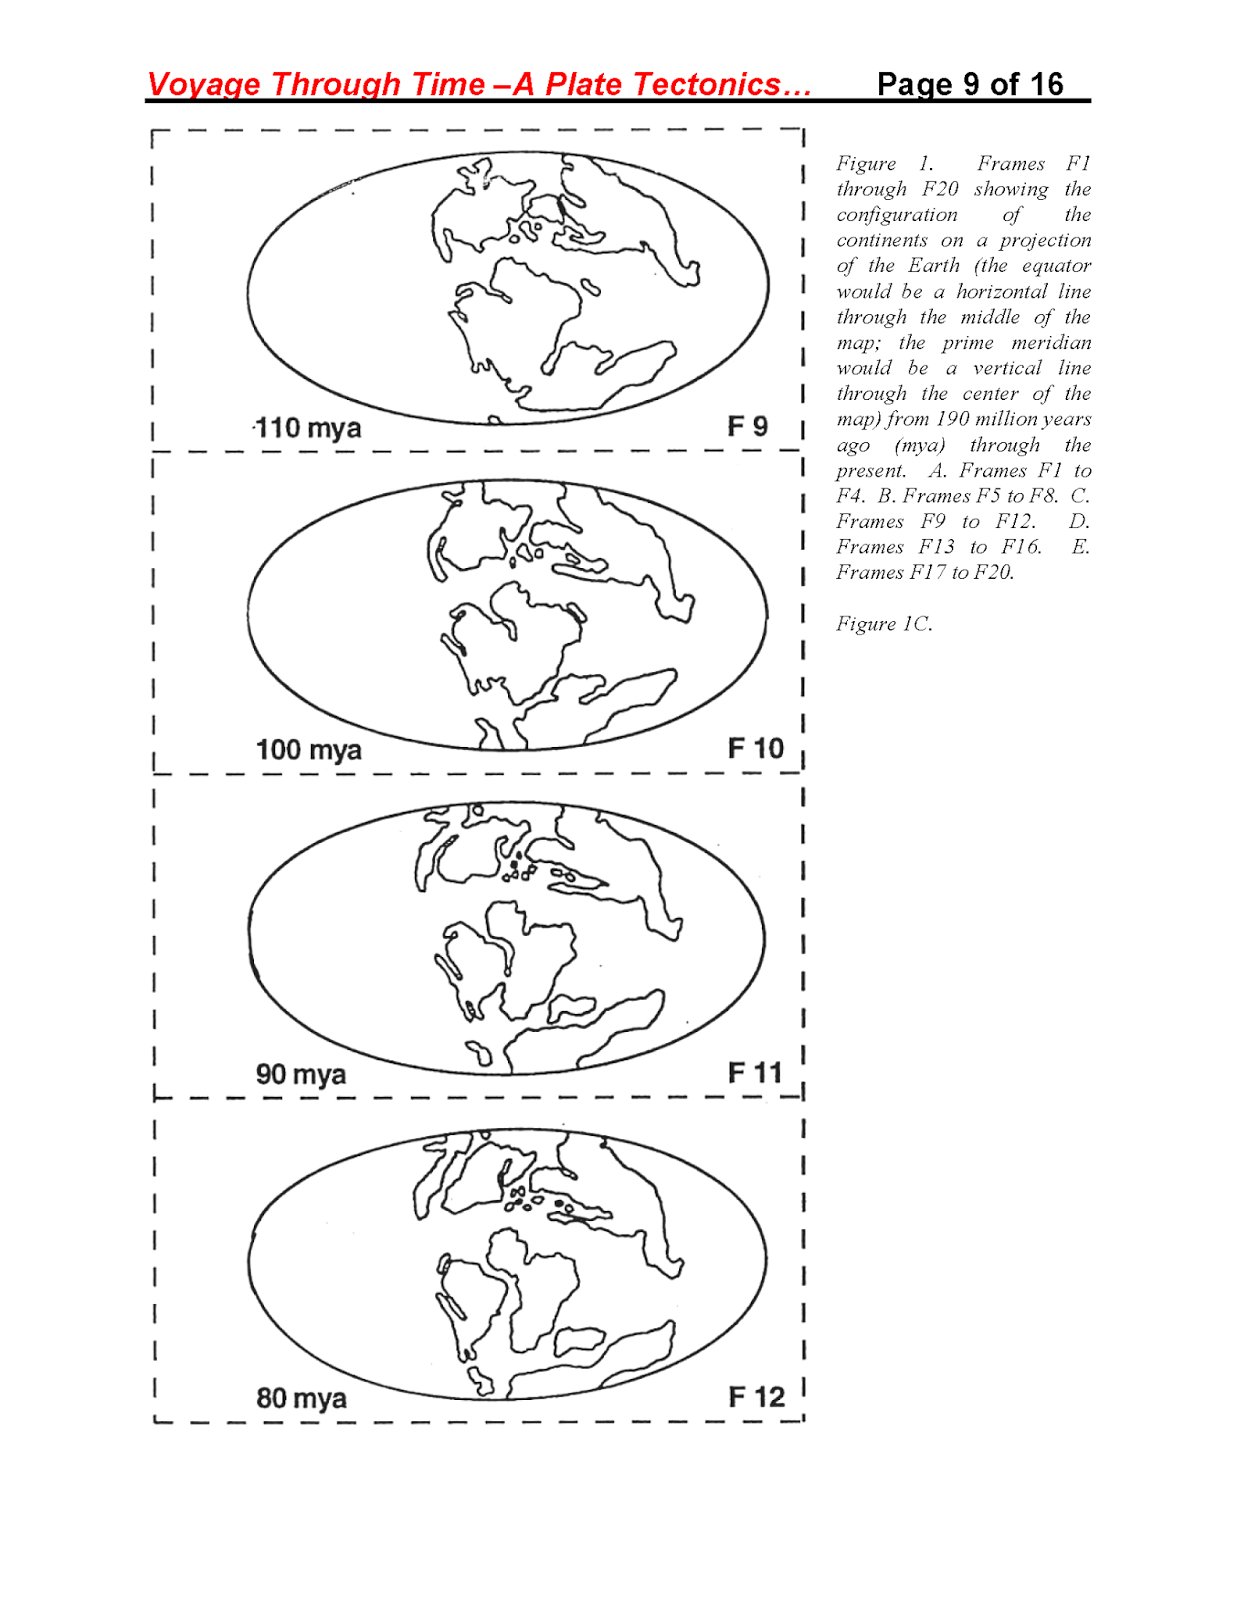 Miss durant 39 s science class week 26 es chapter 8 for Plate tectonics coloring pages